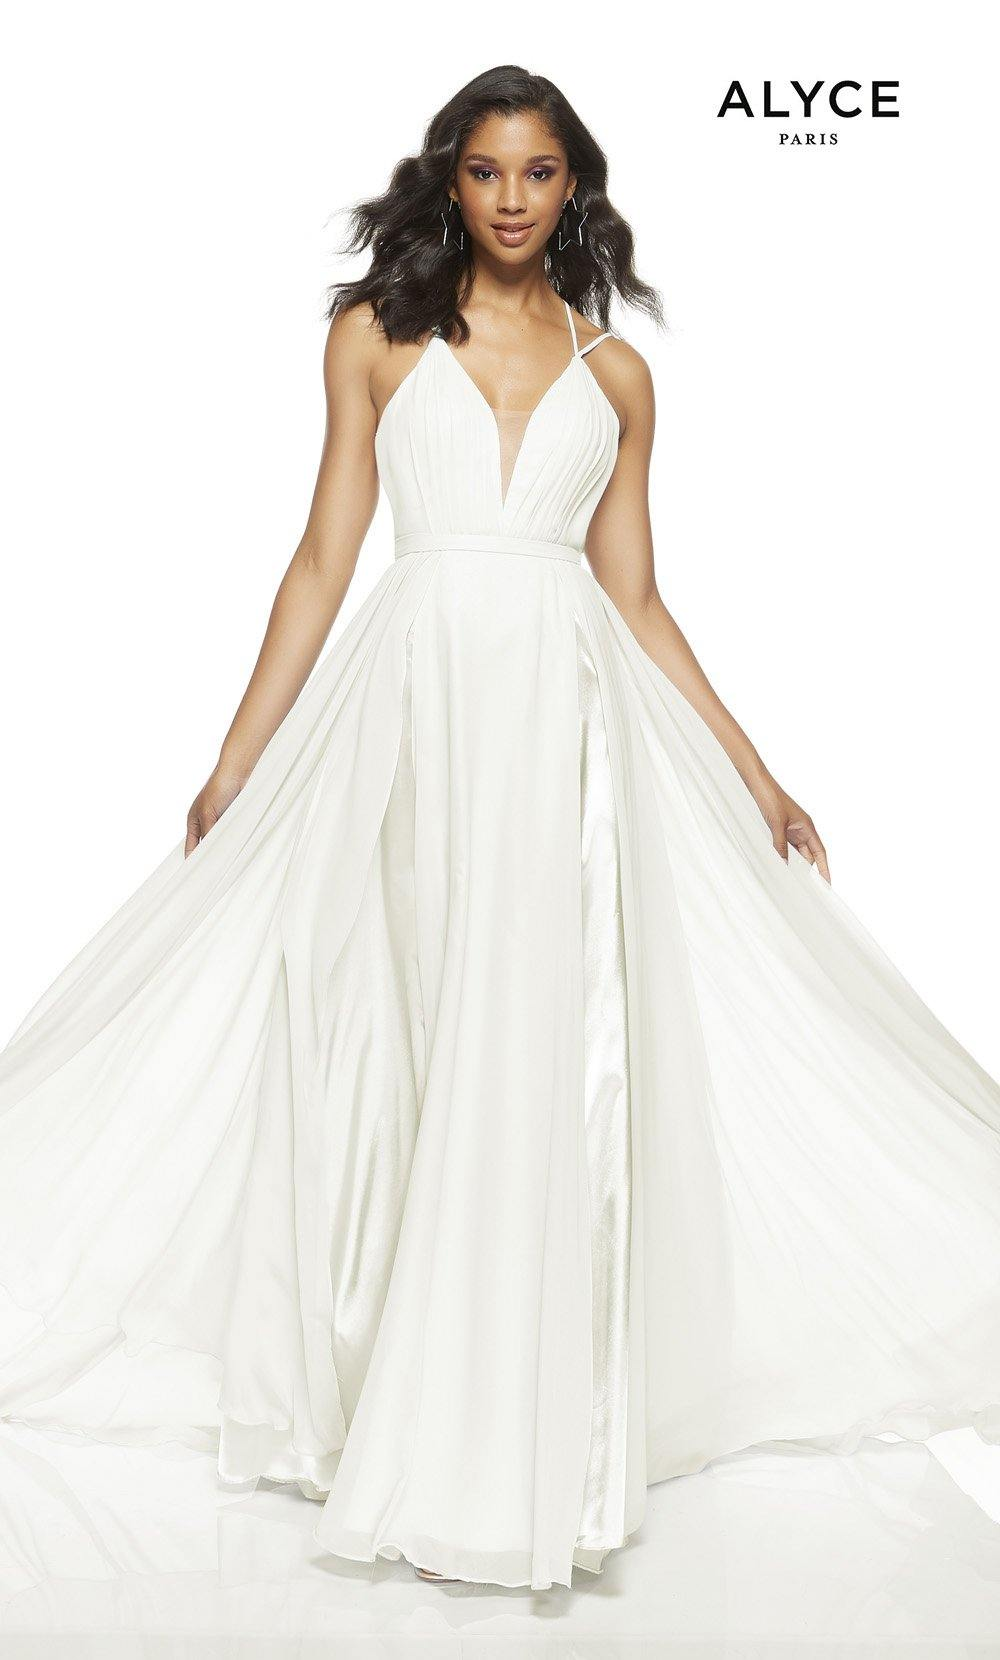 Diamond White flowy wedding guest dress with a plunging neckline